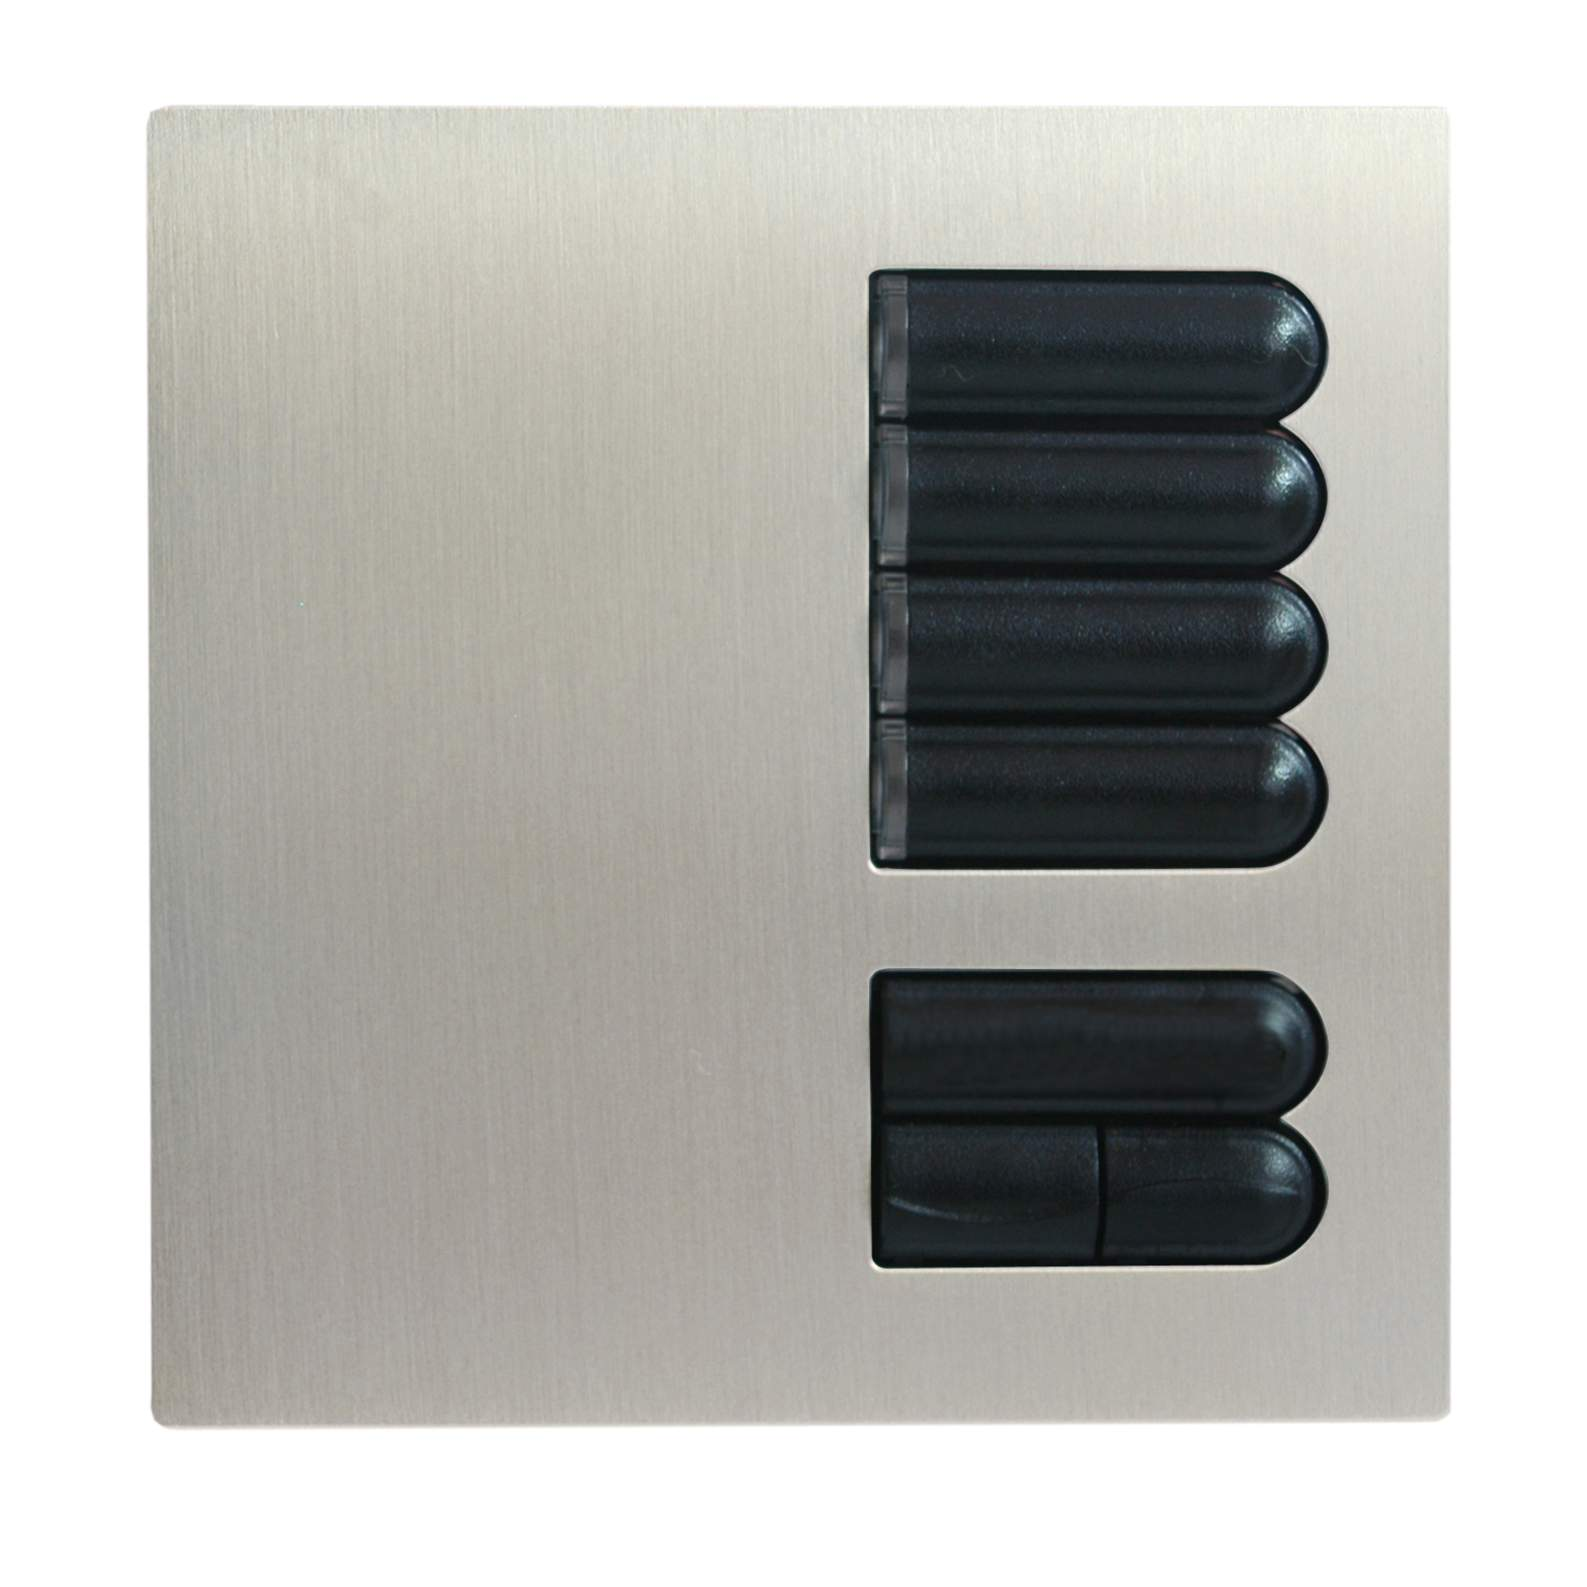 lutron european wall switch cover plate egrx4s satin. Black Bedroom Furniture Sets. Home Design Ideas